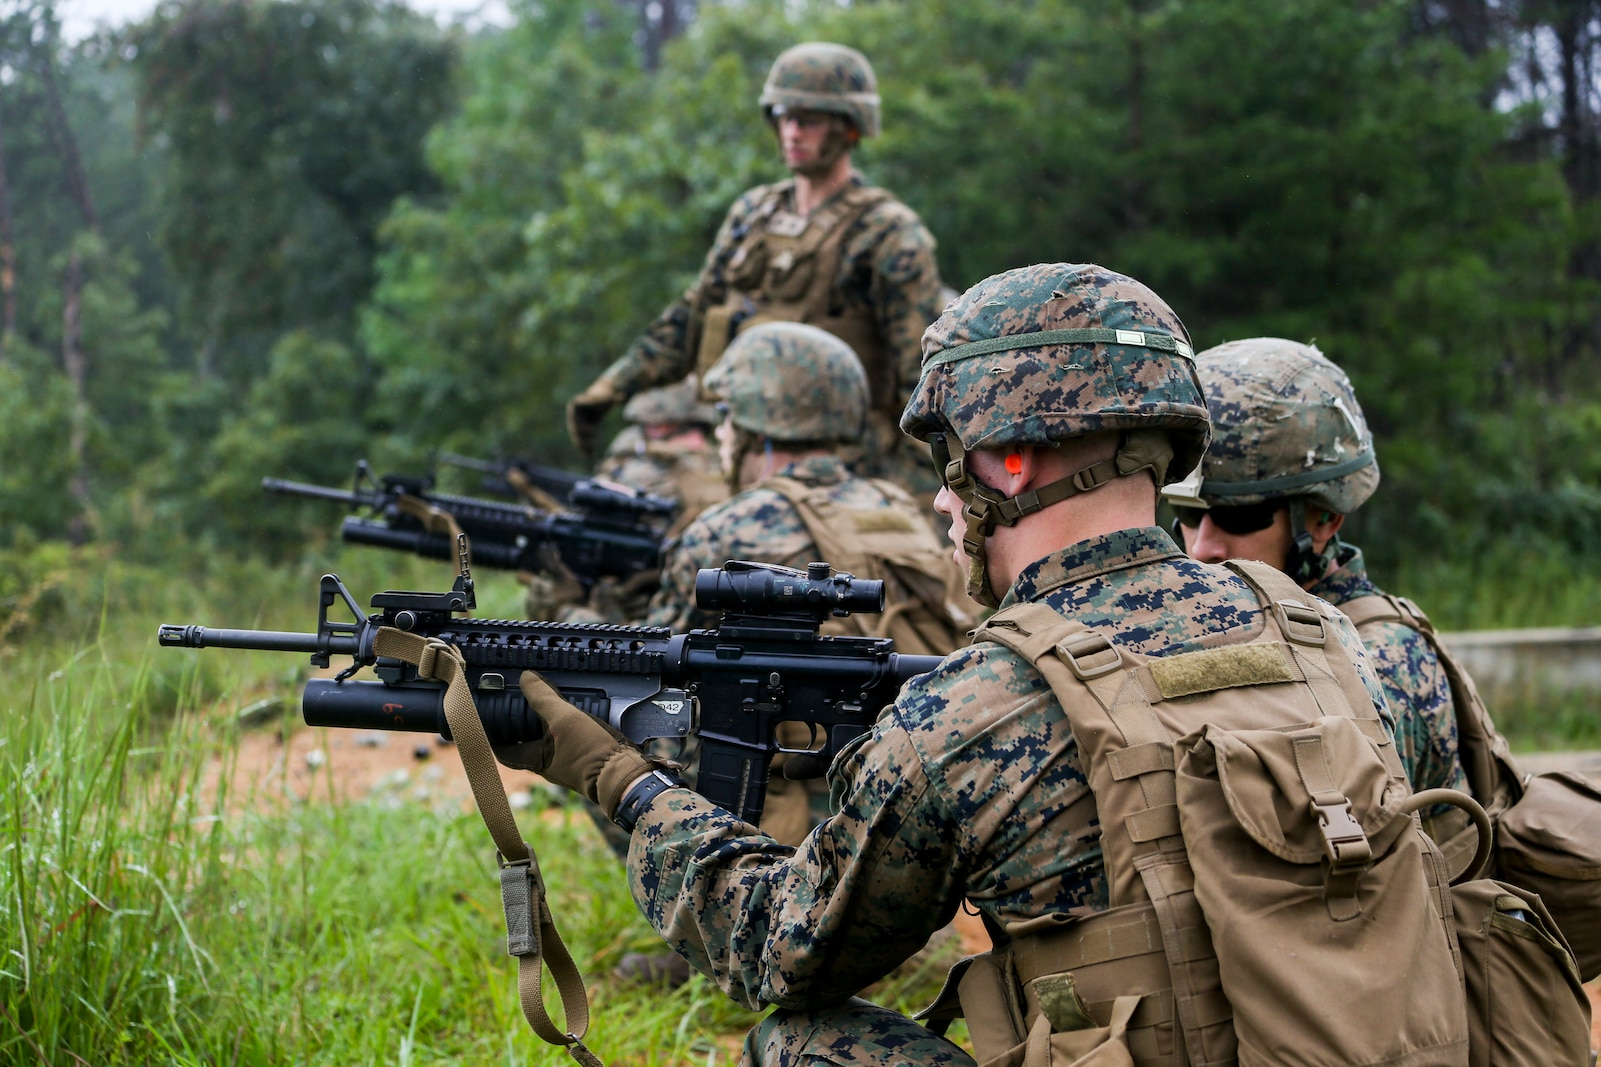 Marines with Bravo Company participate in a high explosive (HE) range during a three day field operation at Marine Corps Base Quantico in Quantico, Virginia, Sept. 10, 2020.